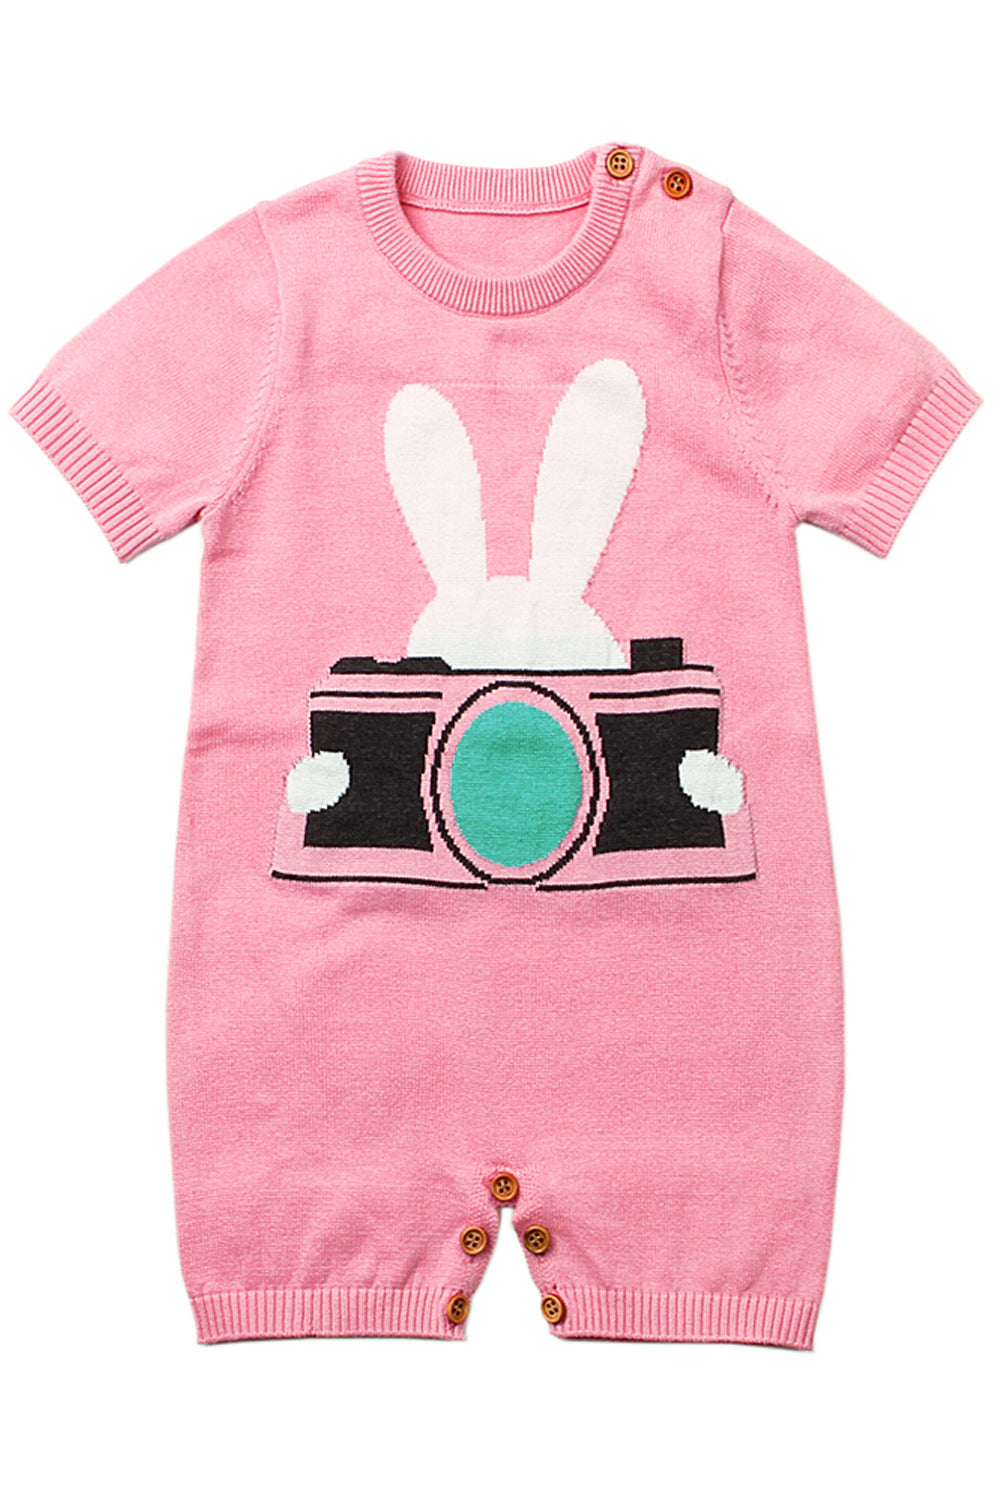 Pink Rabbit Photography Baby T-shirt Onesies